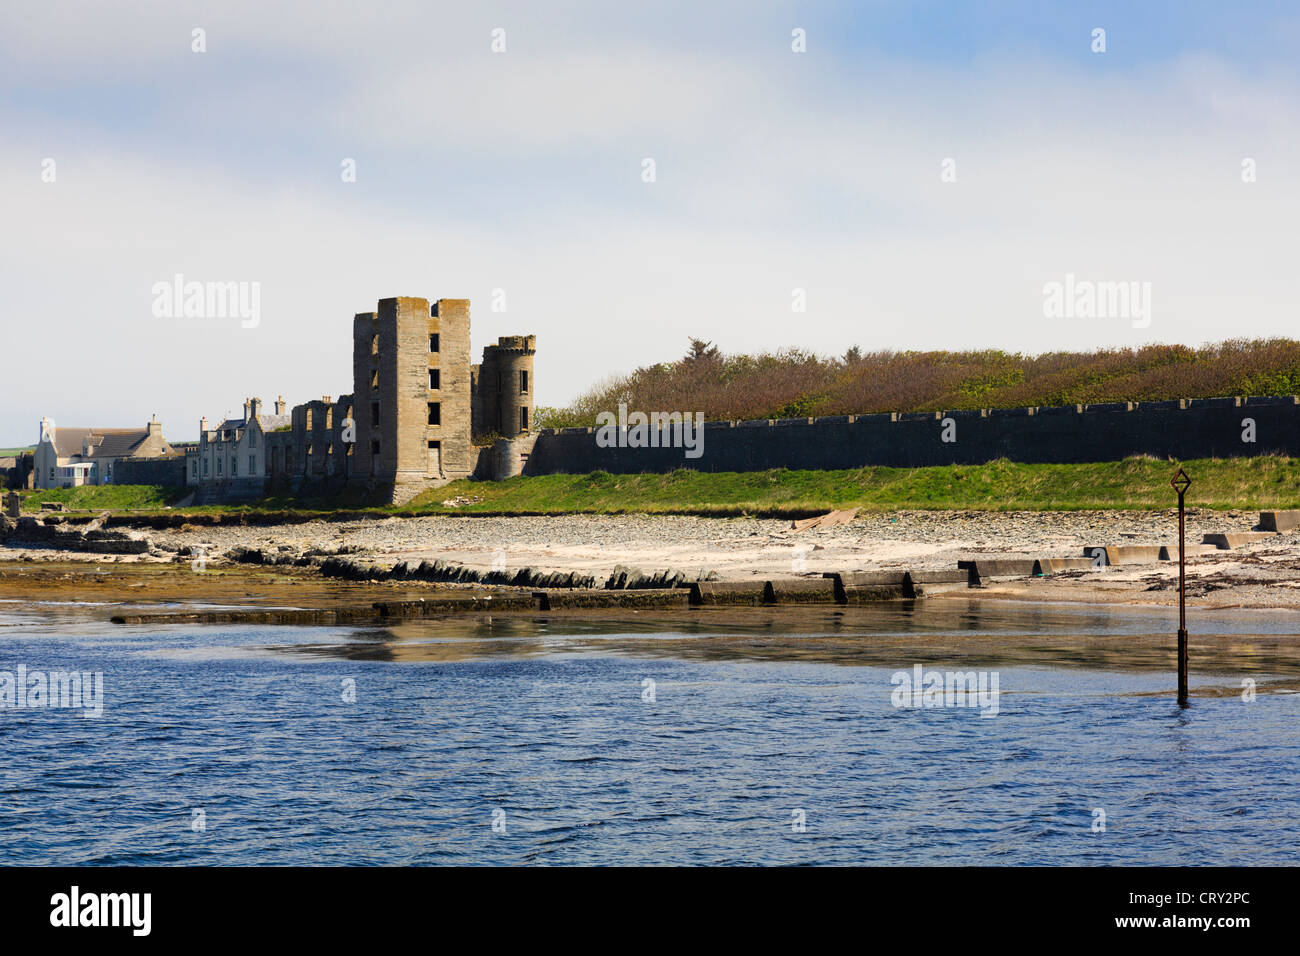 View across River Thurso estuary to Castle ruins in Britain's northernmost town of Thurso Caithness Scotland - Stock Image